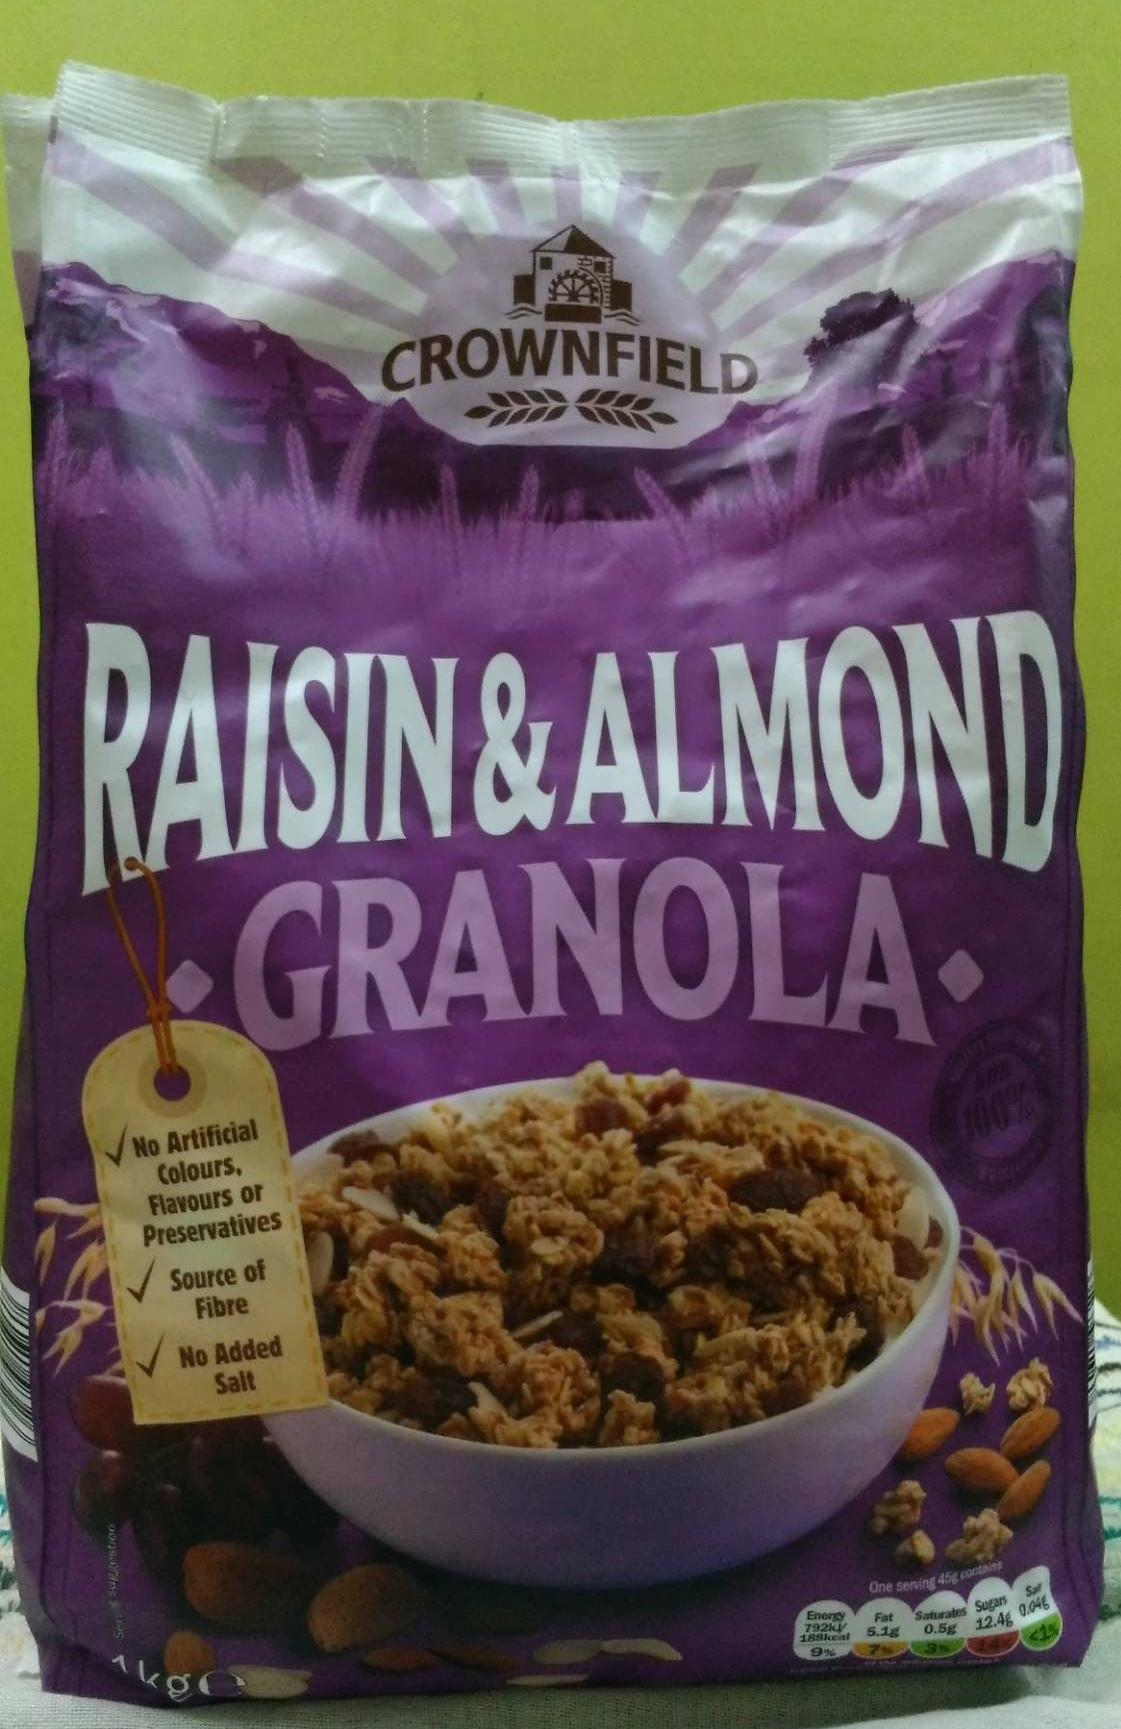 Cereals Brands Breakfast Cereal On Sale Prices Set Reviews In Lowan Original Harvest Muesli 1kg Raisin And Almond Granola